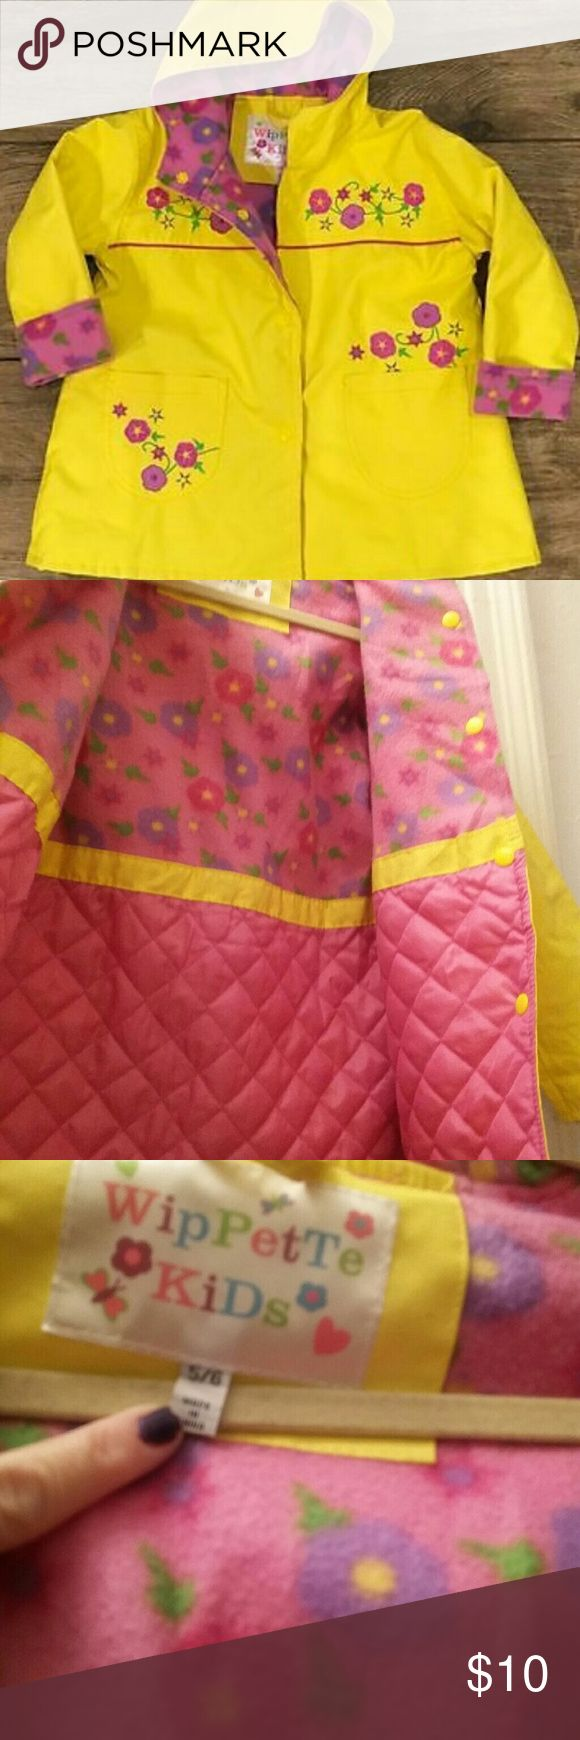 Girls yellow floral lined Raincoat Perfect raincoat for chilly weather.  Nicely lined. So cute and very well made! Has few minor imperfections (which is why im pricing this low, but its a steal for this quality slicker ) that are not too noticeable when worn. wippette Kids Jackets & Coats Raincoats